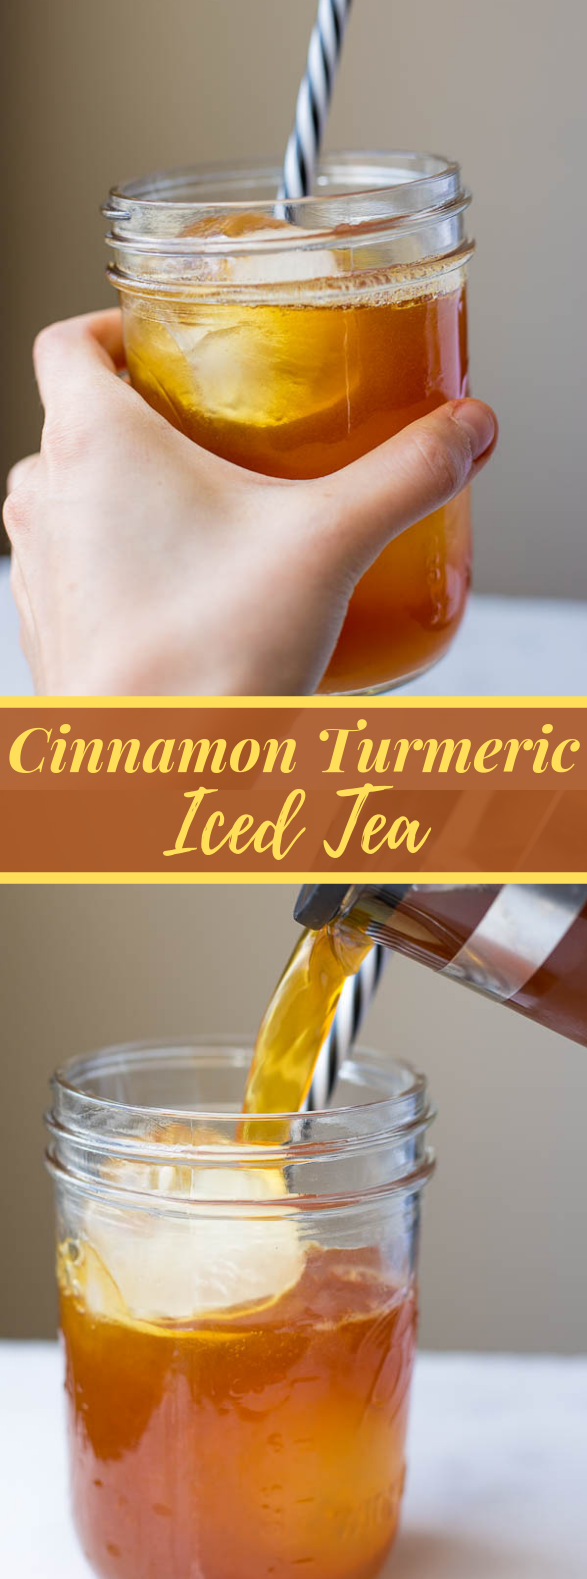 Cinnamon Turmeric Iced Tea (aka. golden iced tea) #drink #ice